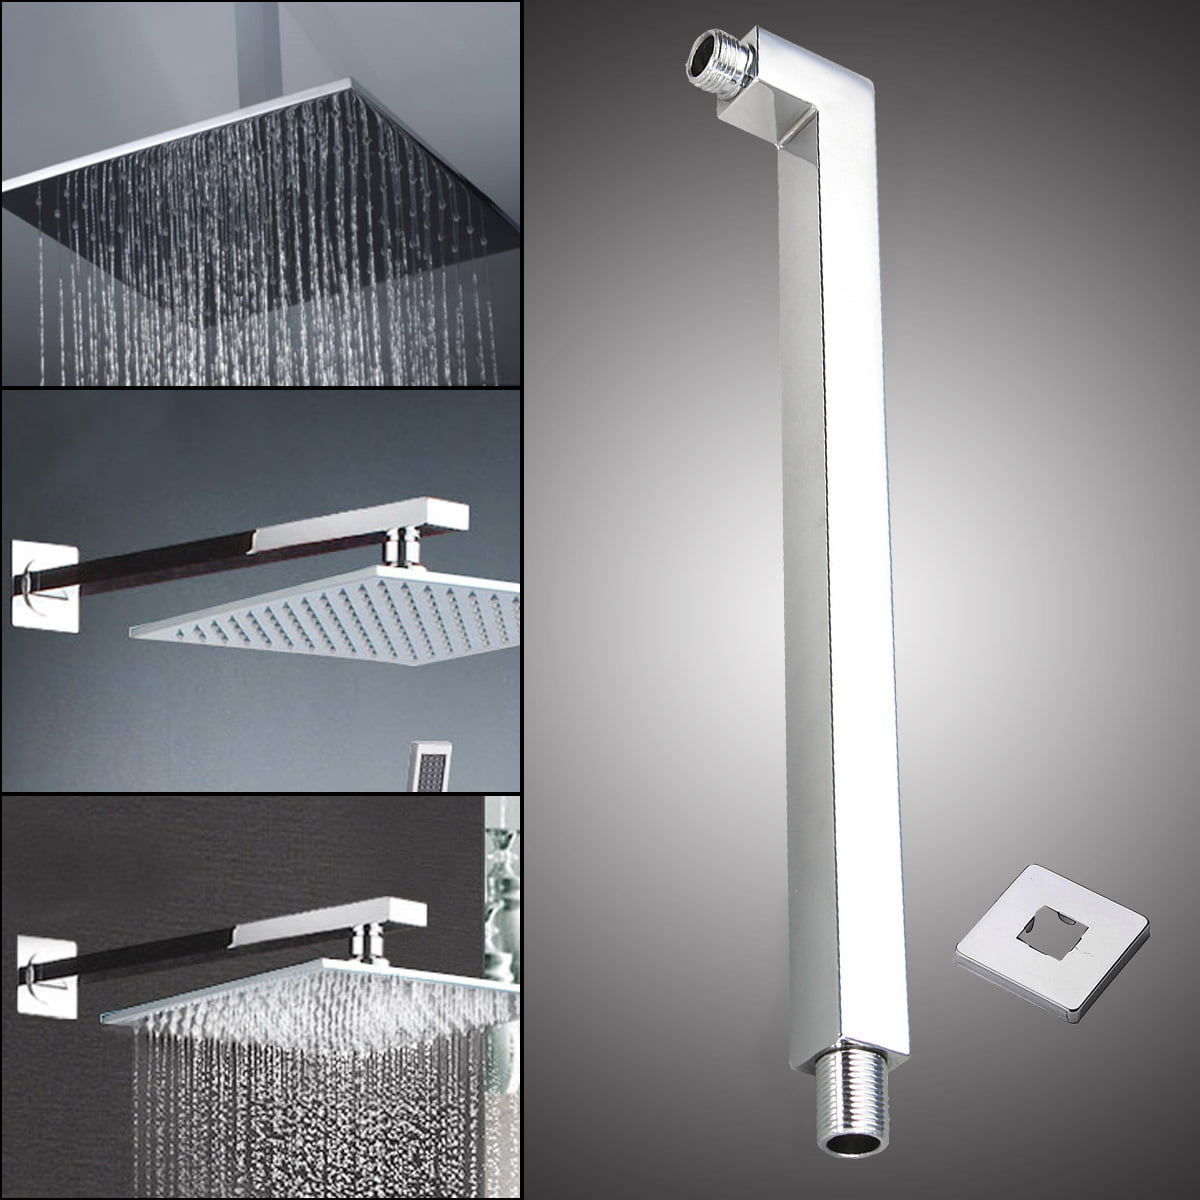 16 40cm Square Ceiling Rain Shower Head Chrome Wall Mounted Extension Arm 25x25x400mm Walmart Com